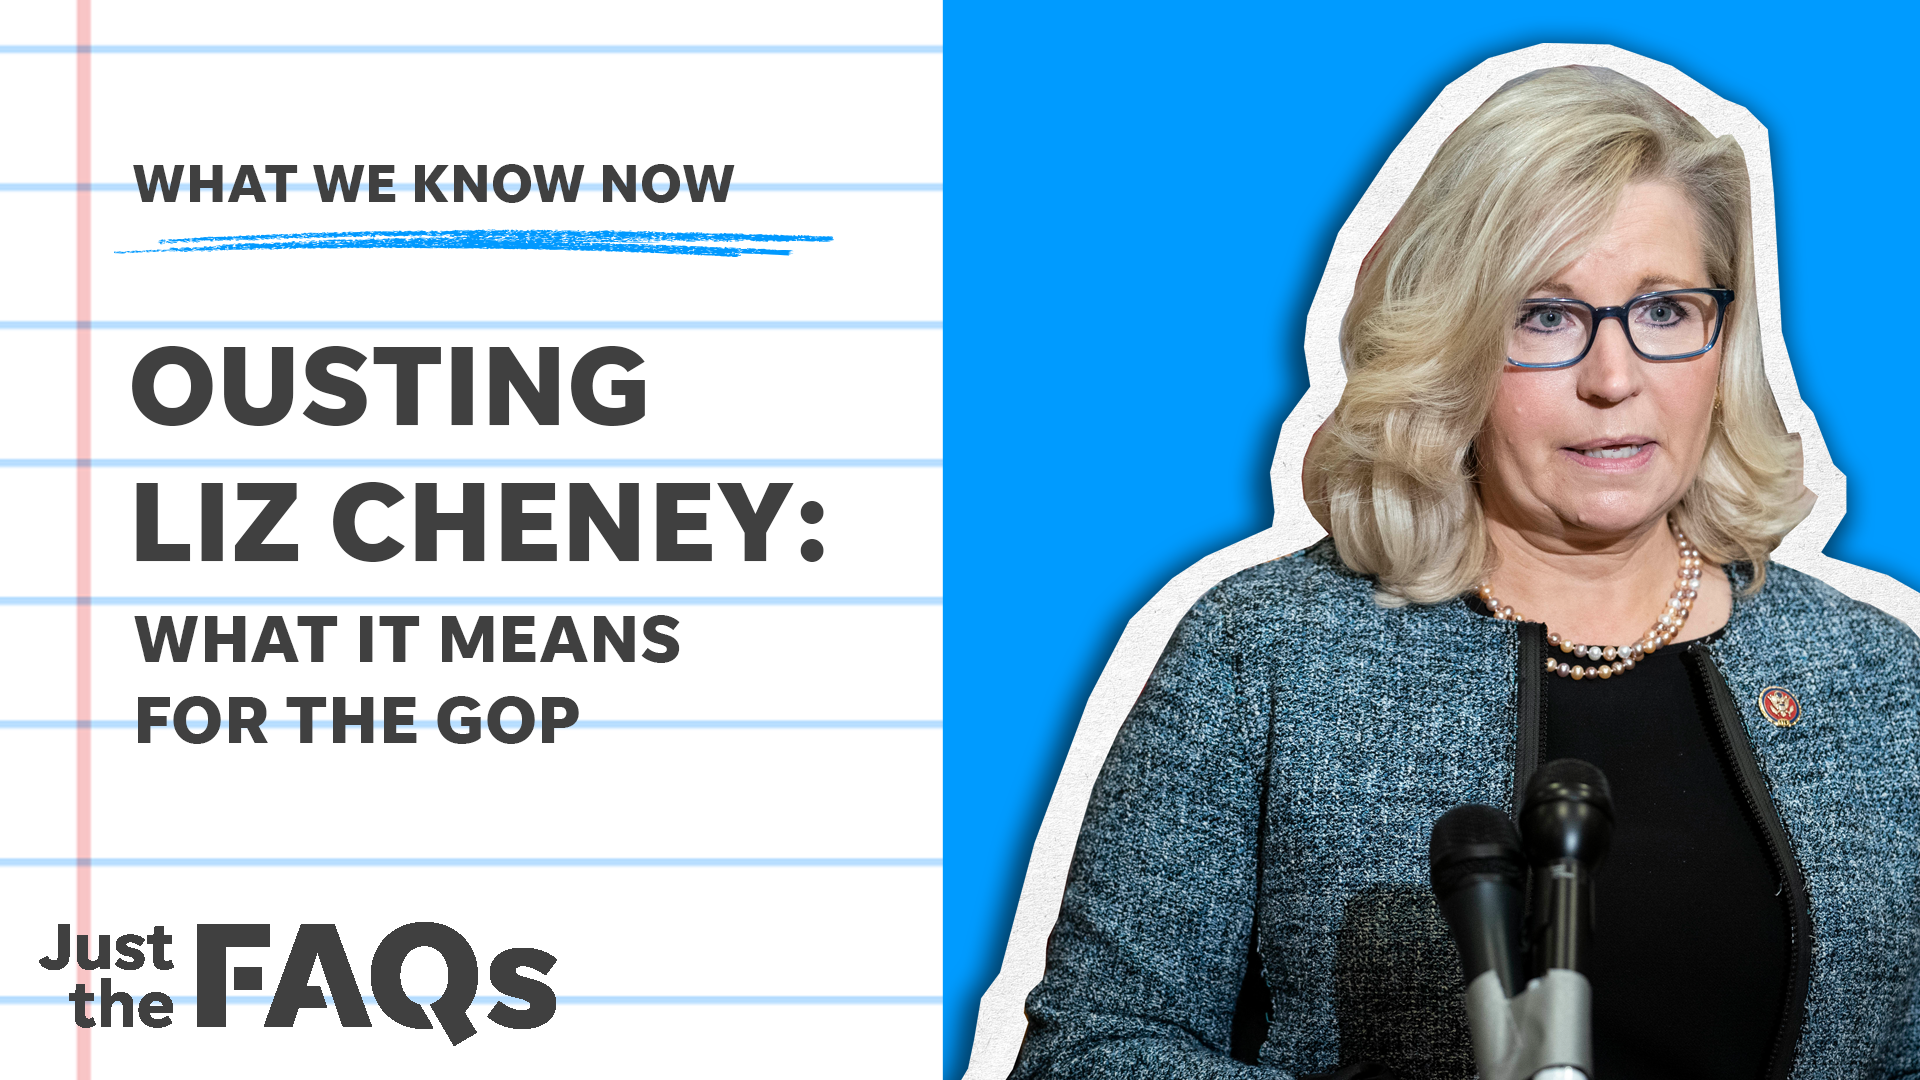 Liz Cheney ousted from her leadership role; here's how it impacts the future GOP